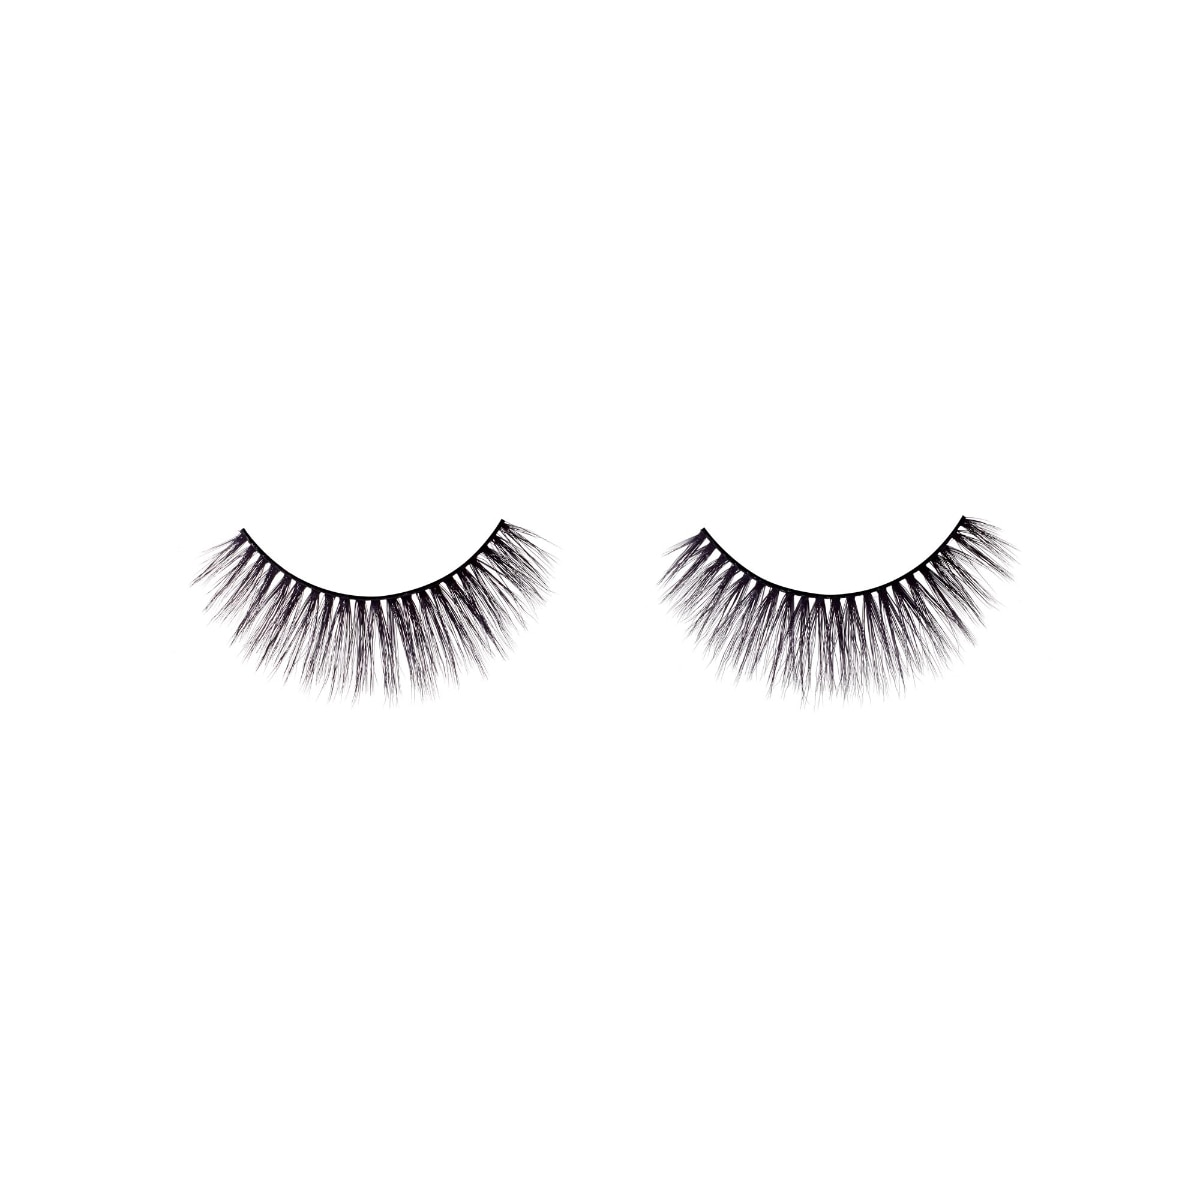 GO BIG OR GO HOME VEGAN FALSE LASHES & GLUE (PESTAÑAS POSTIZAS Y PEGAMENTO)